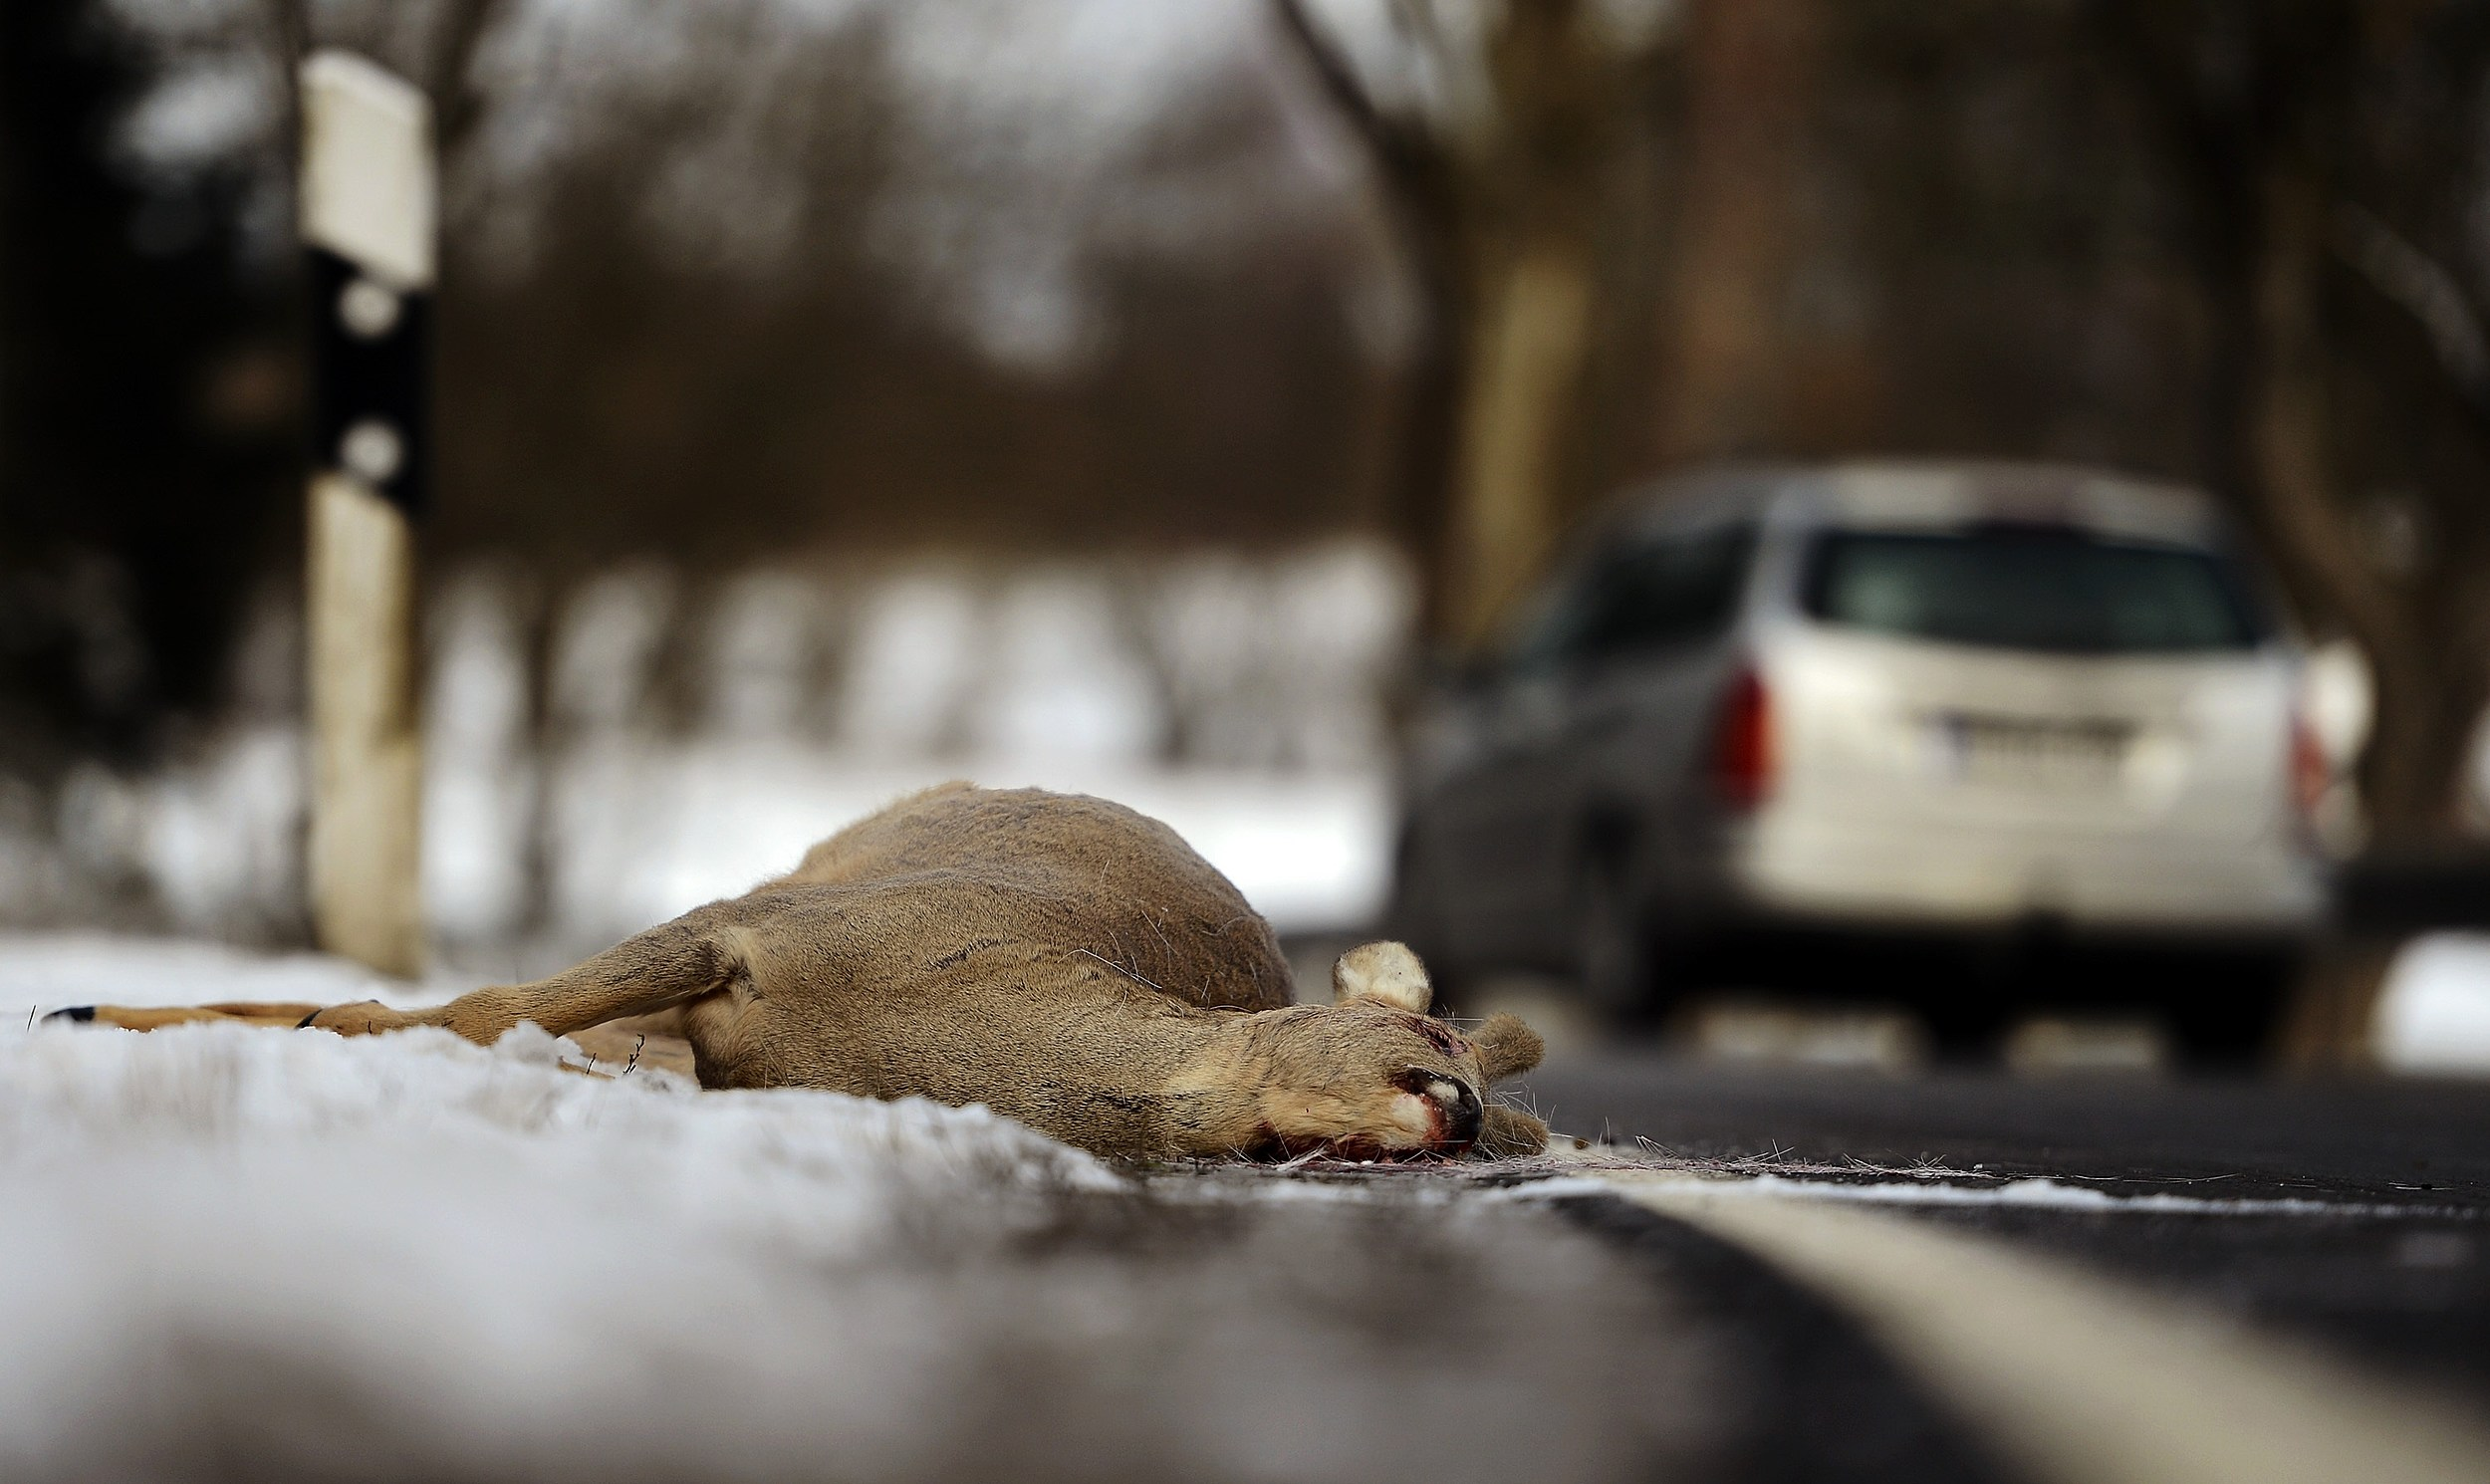 Car Deer Crashes on the Rise in Ingham County